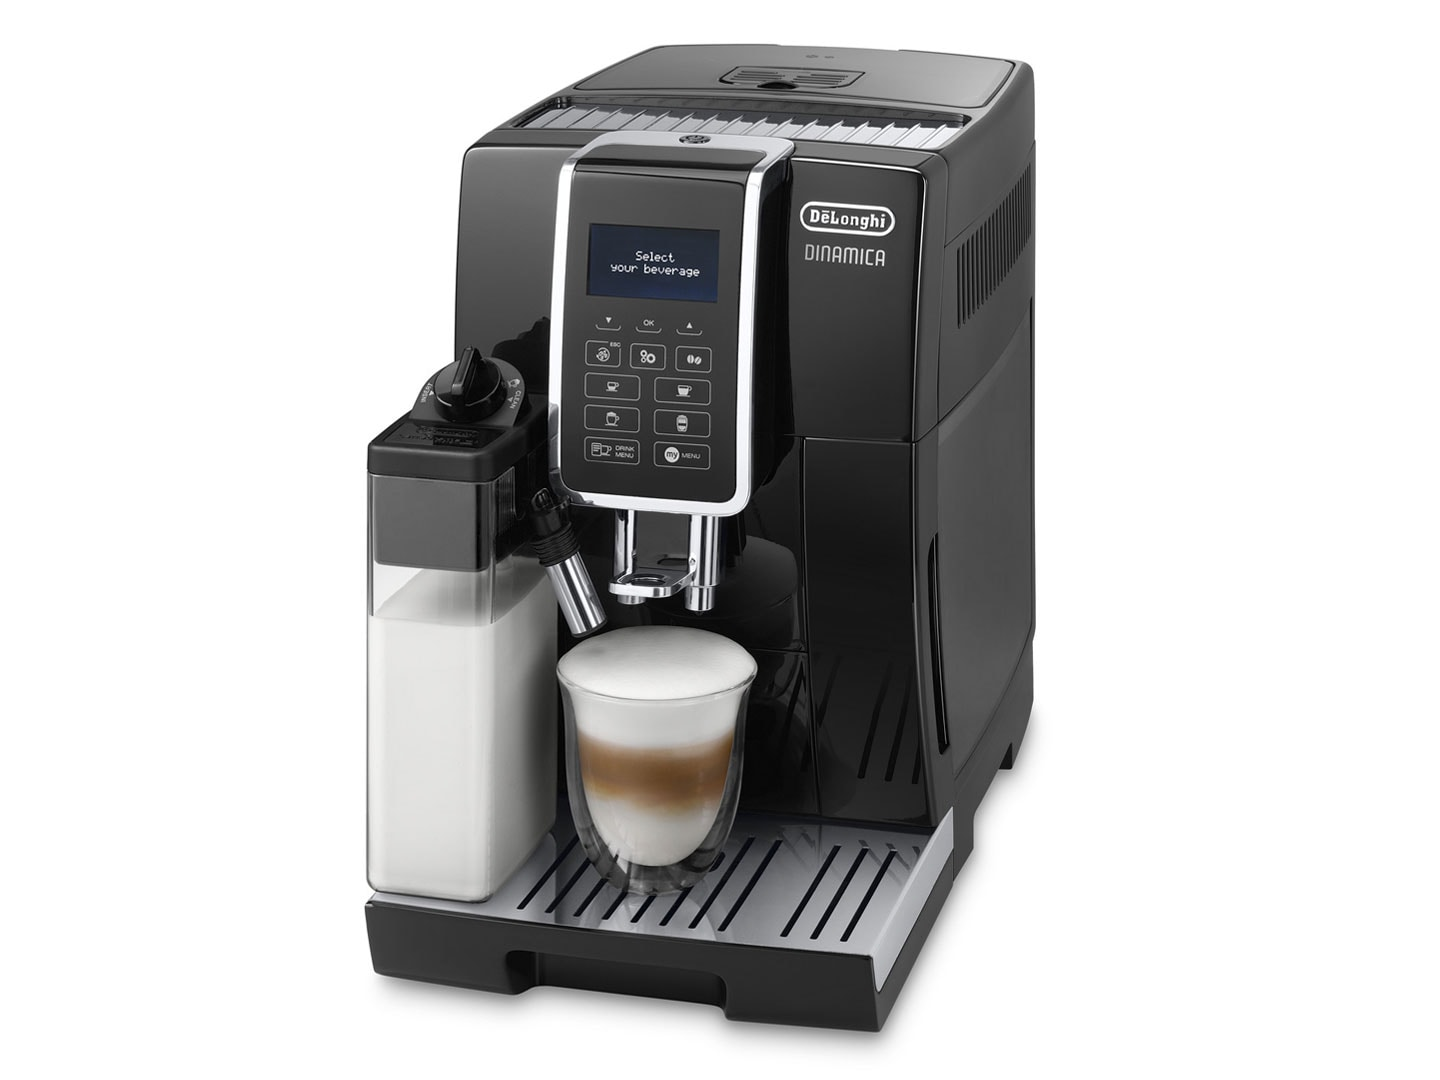 Dinamica ECAM 35055B is an Automatic Coffee Machine made in Italy with intuitive display to select and make coffee in just one touch